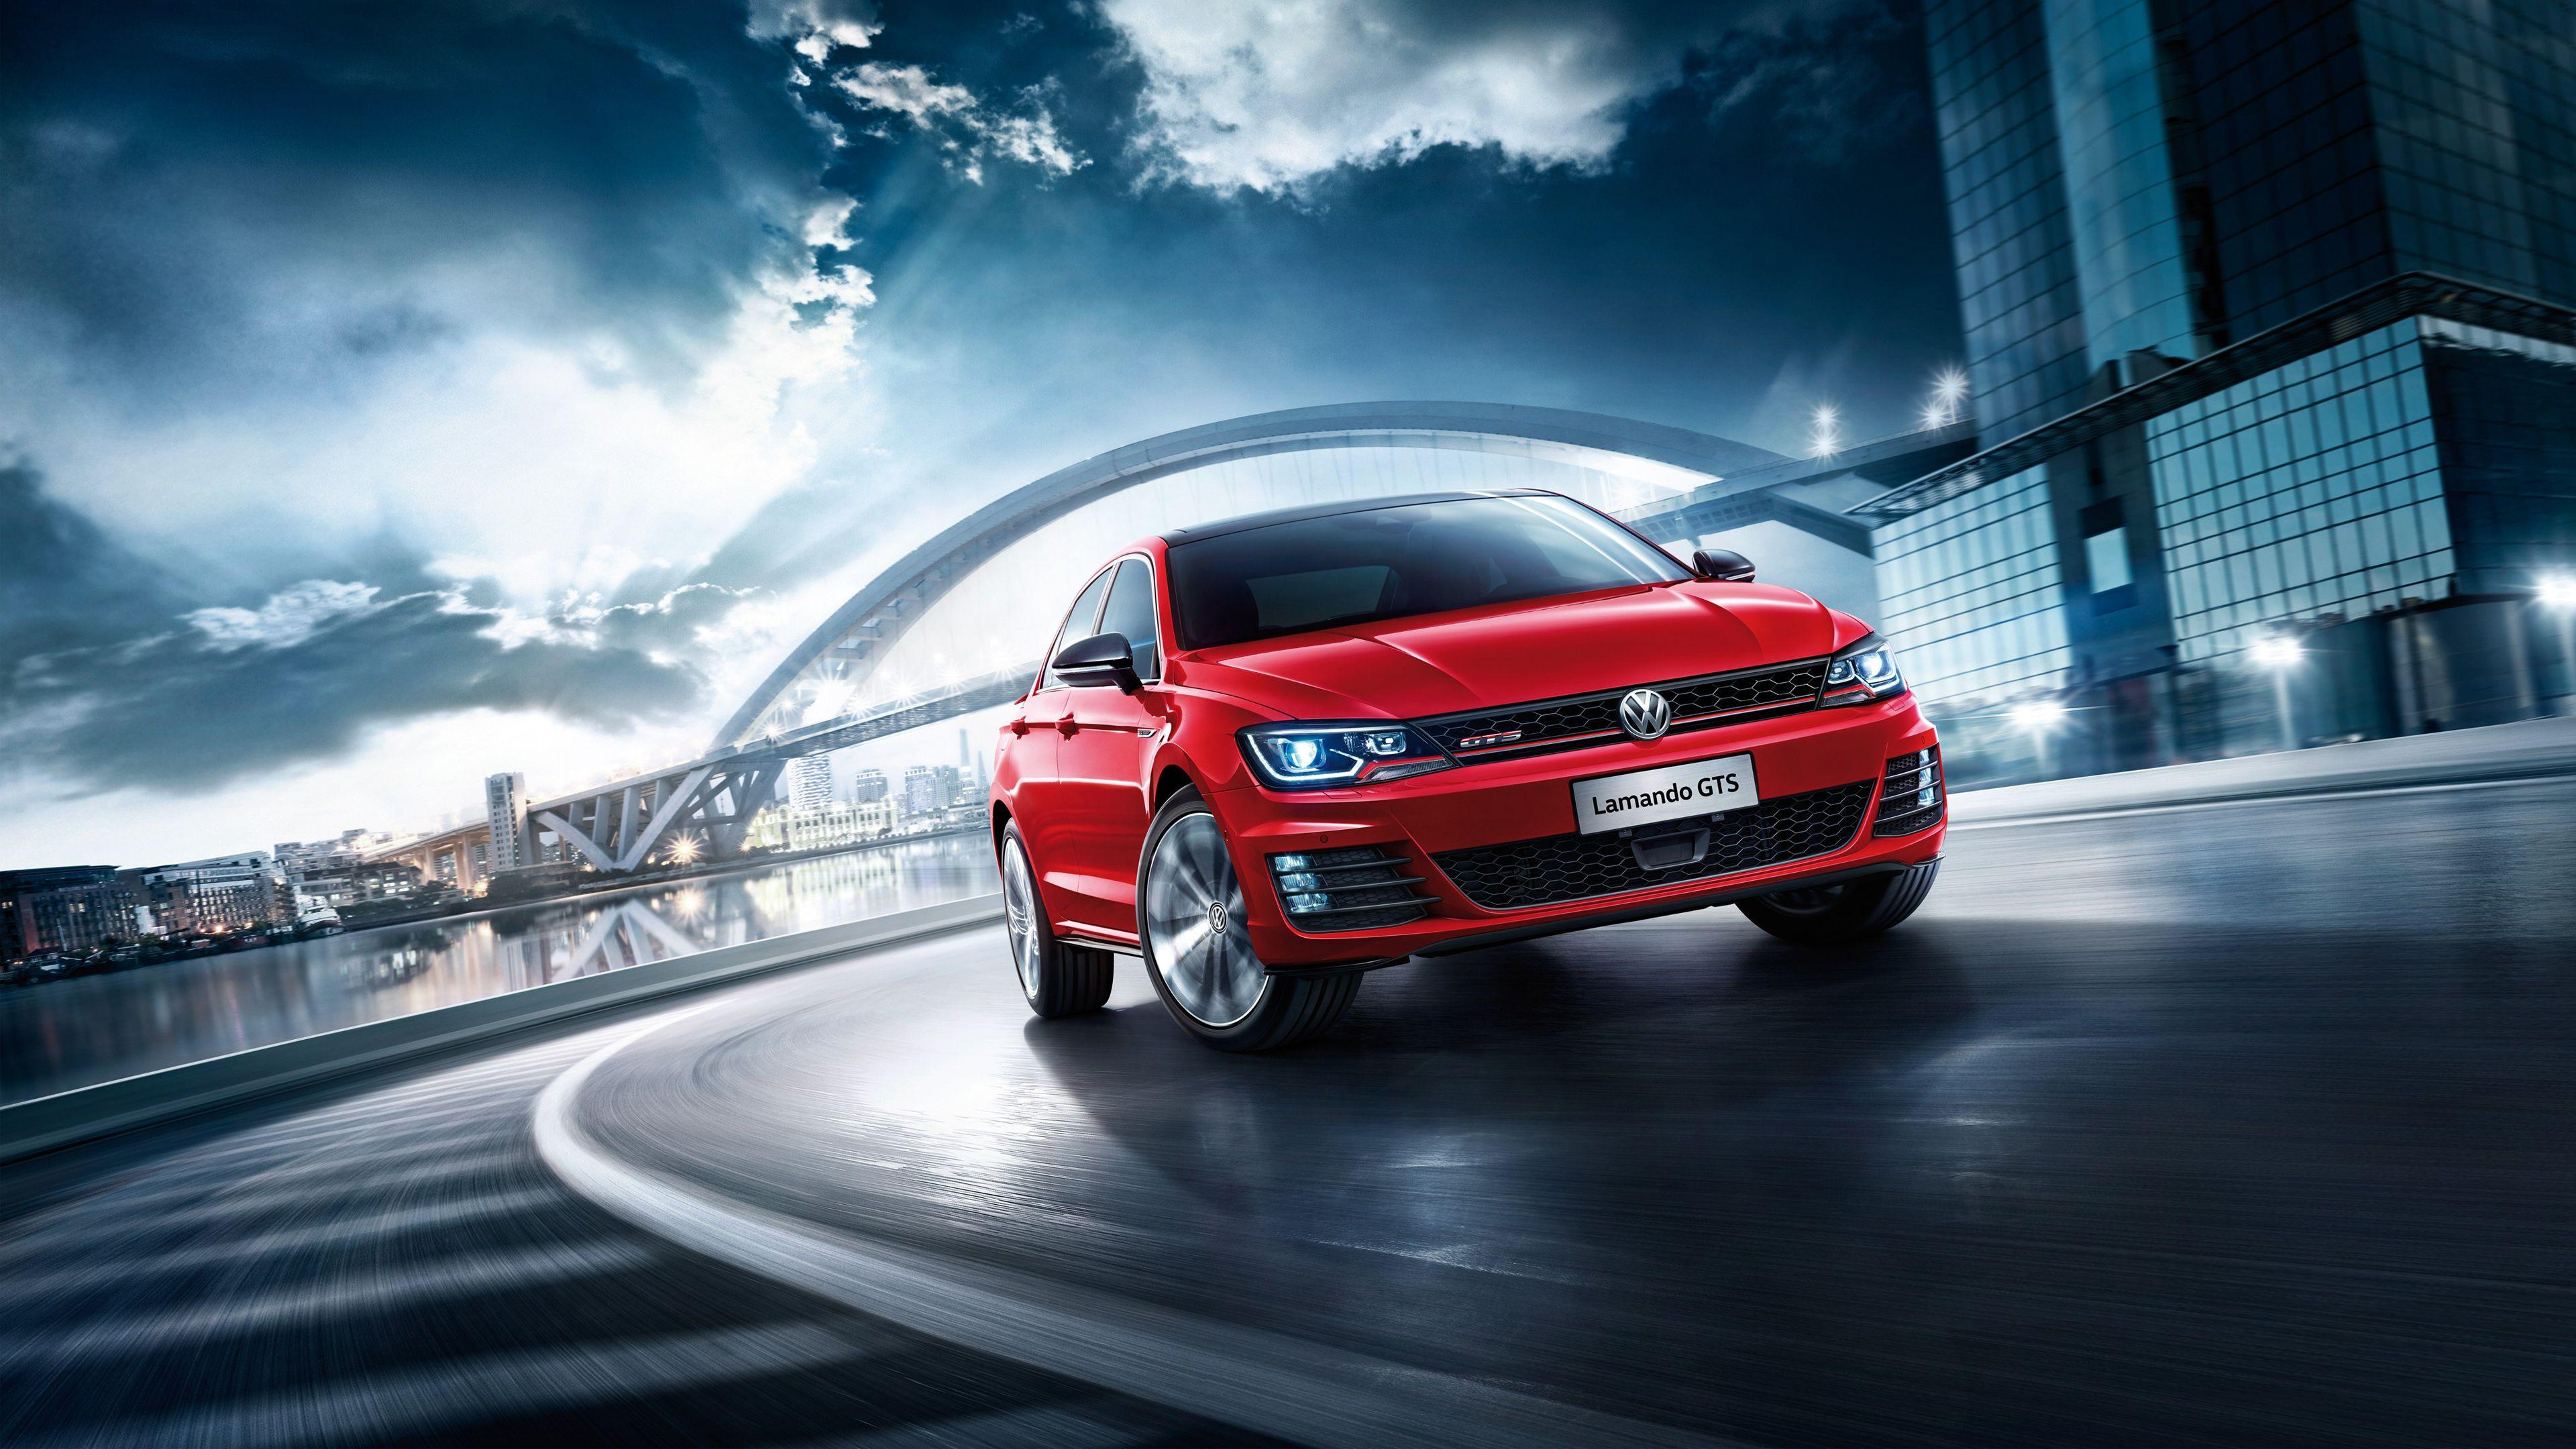 Volkswagen Car Hd Wallpaper